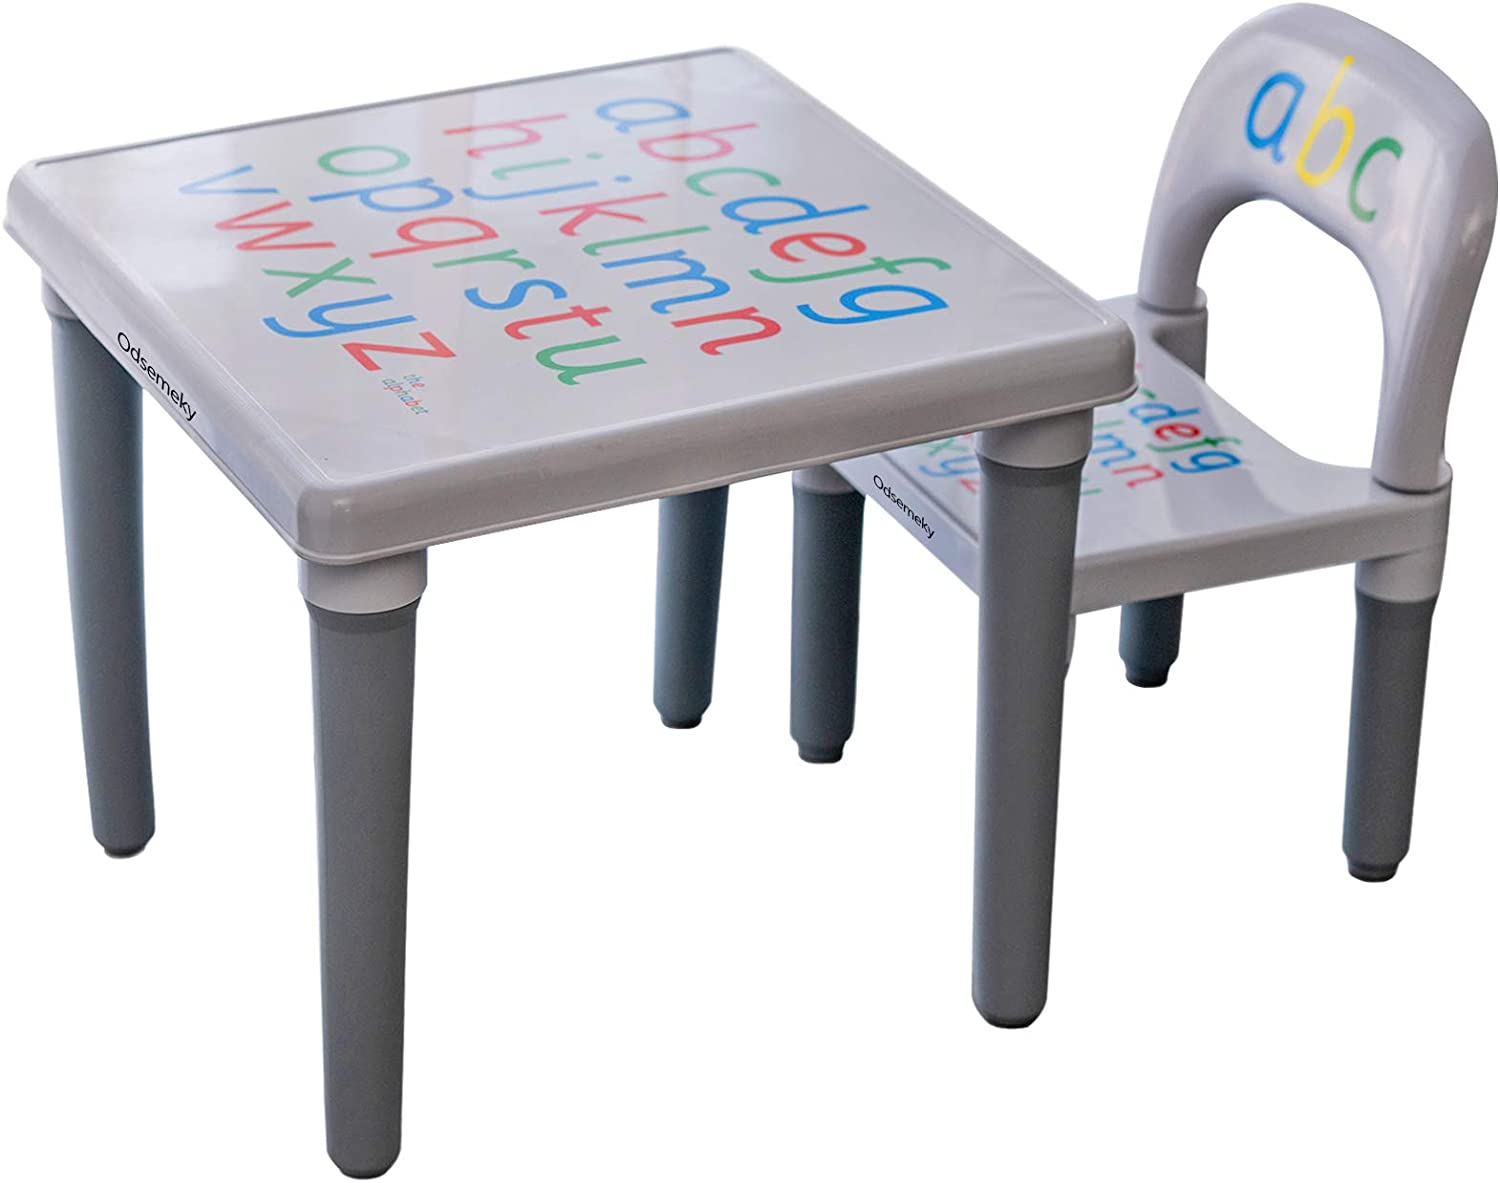 Odsemeky Toddler Activity Table and Chair Set, Kids Table Chair with Anti-Slip Stickers/Plastic Furniture for Study Play Arts Dining Patio Desk for Baby Girls/Boys